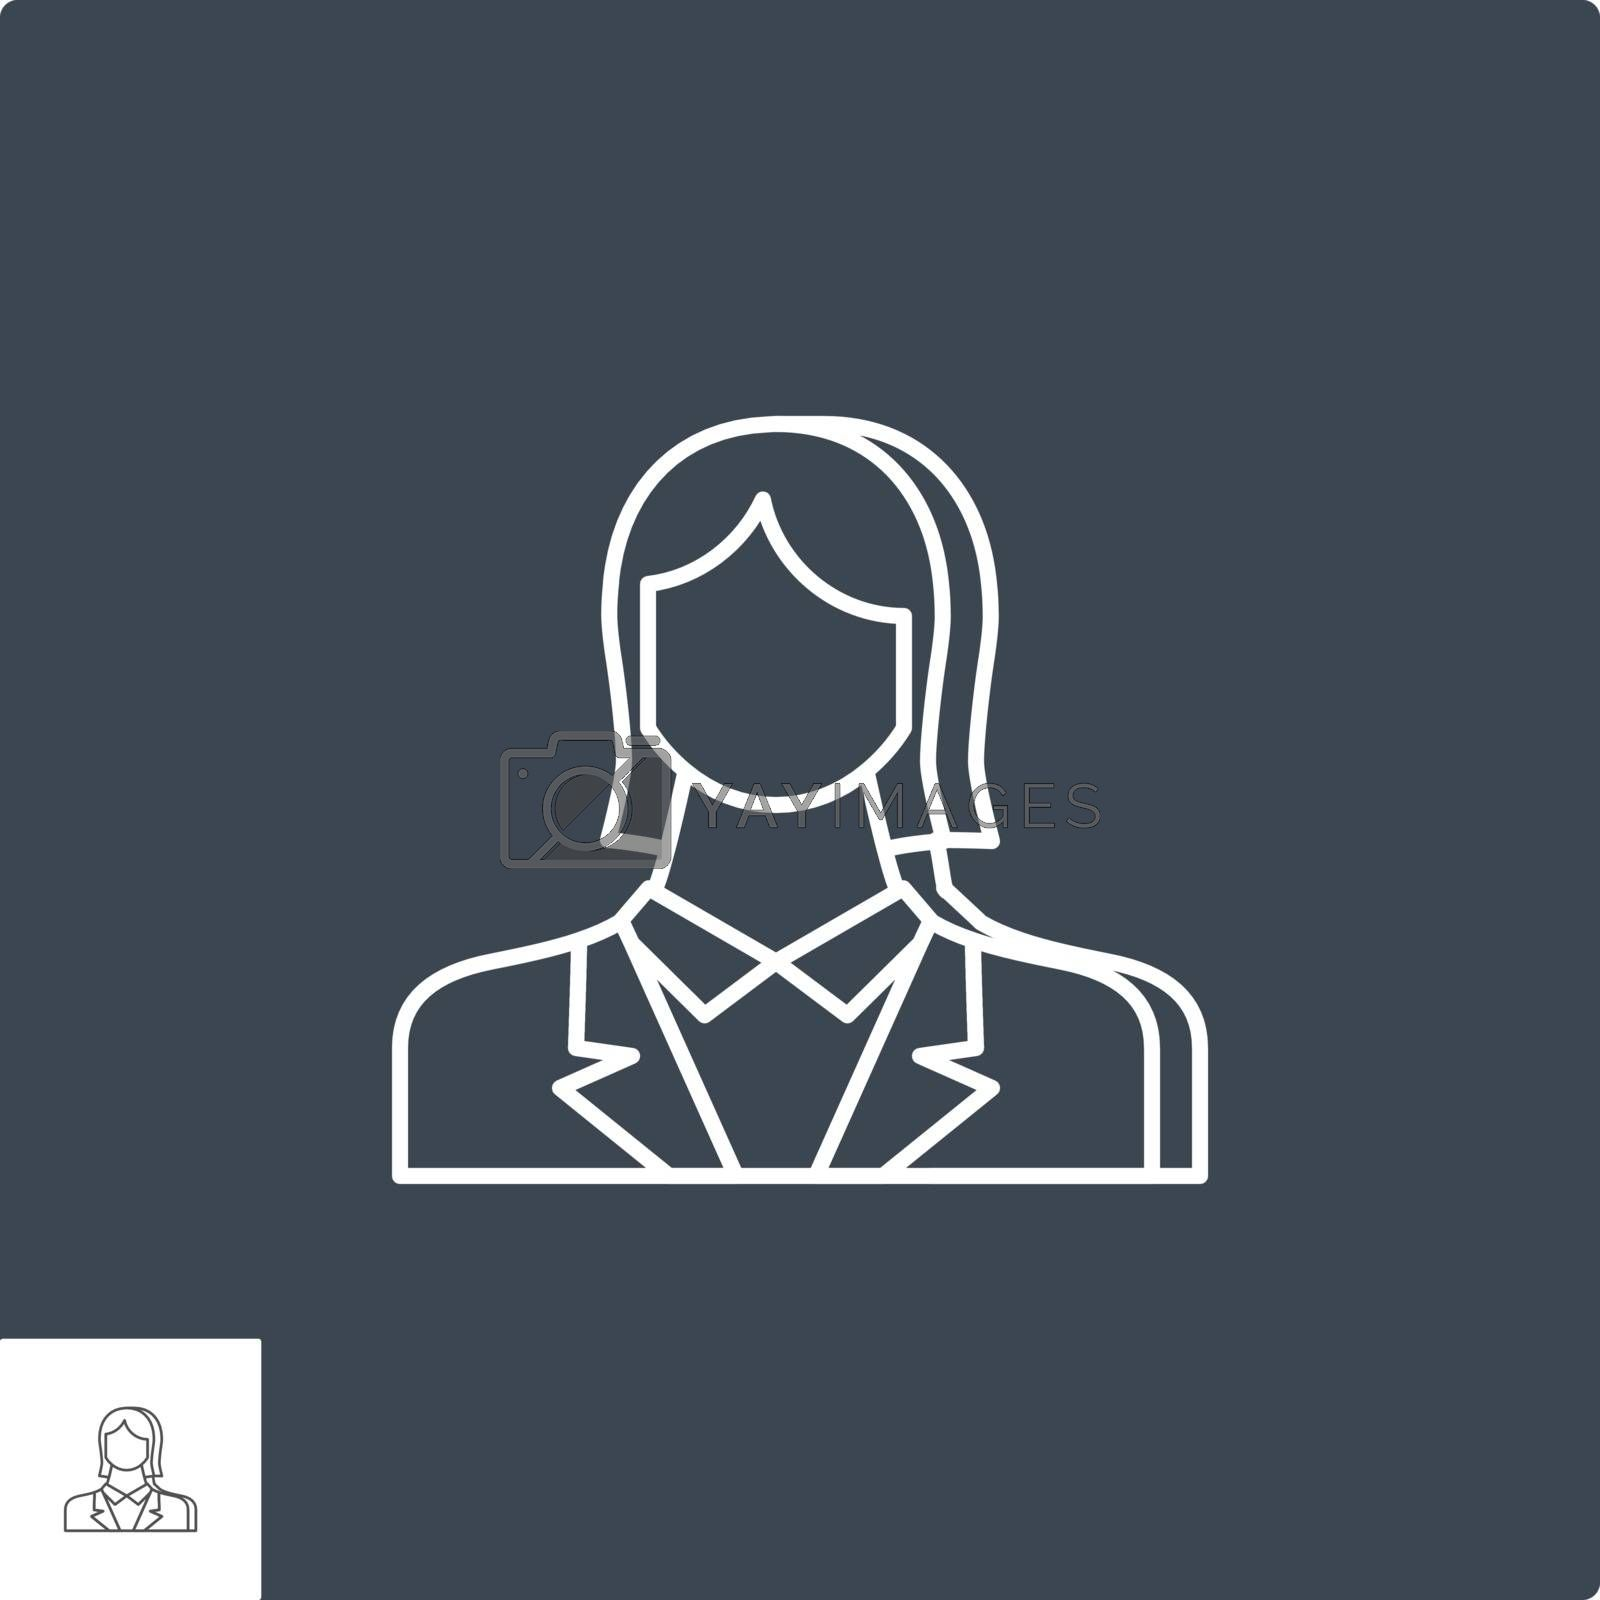 Employee Woman Icon. Employee Woman Related Vector Line Icon. Isolated on Black Background. Editable Stroke.